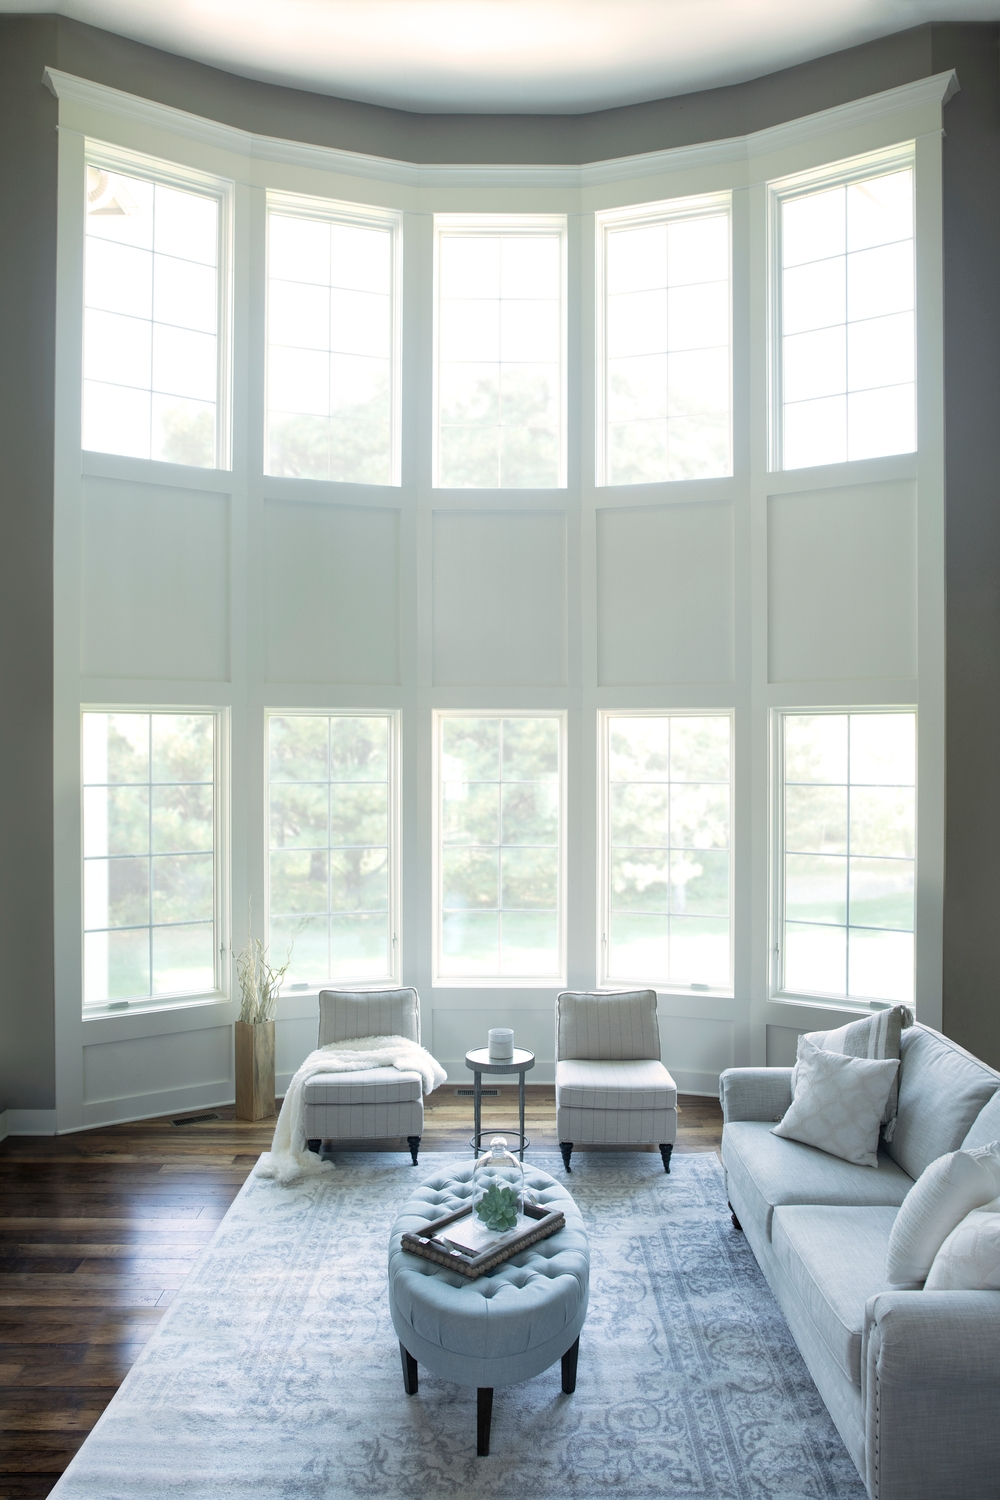 Stacked casement windows create floor-to-ceiling window wall in a living room